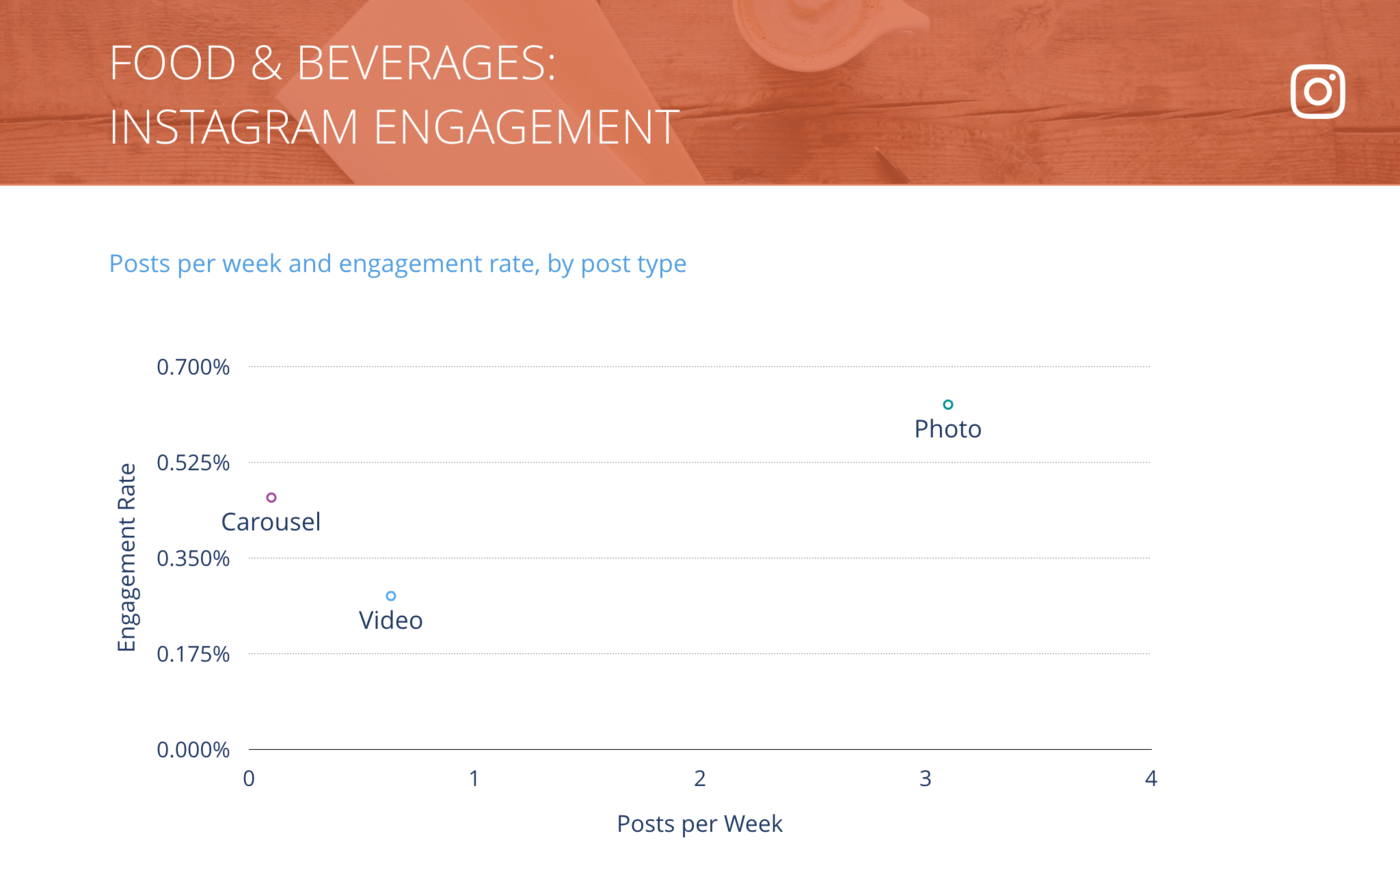 slide of Instagram Posts per Week vs. Engagement Rate per Post, Food & Beverages